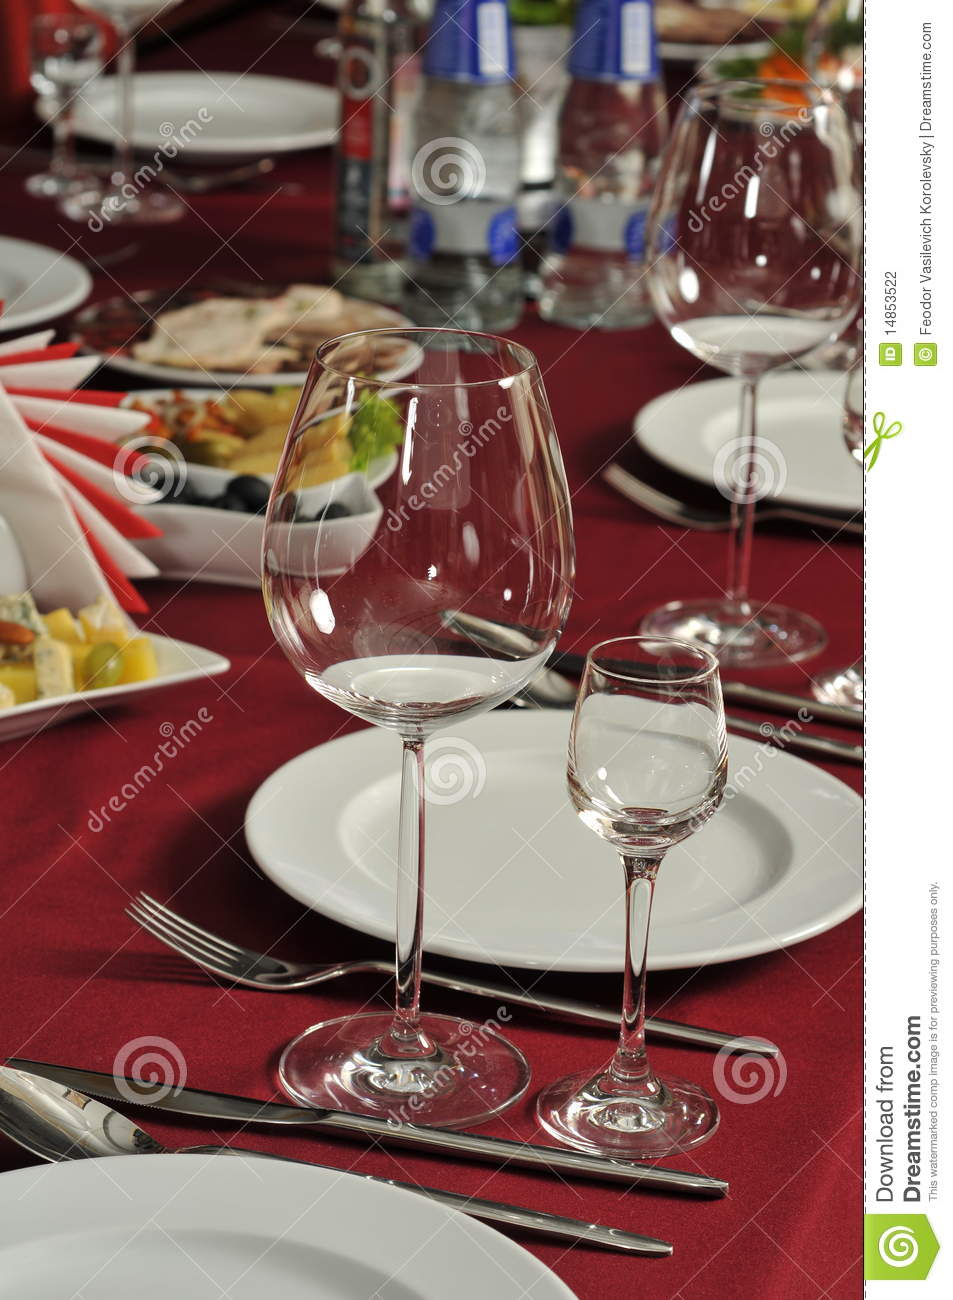 Wine glasses on a table at restaurant.